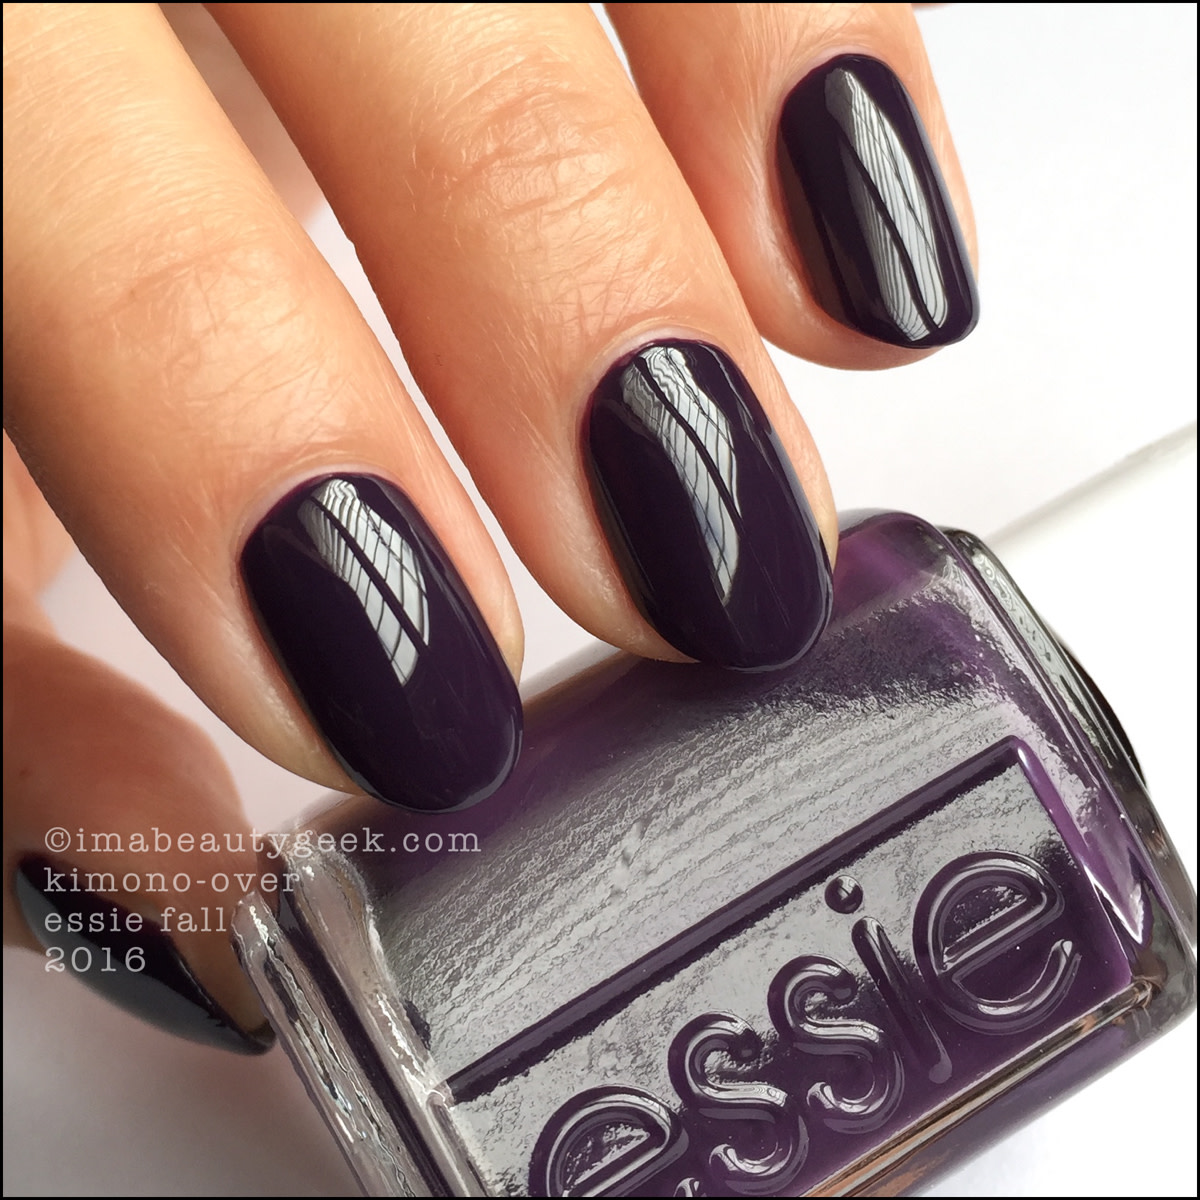 ESSIE FALL 2016 COLLECTION SWATCHES AND REVIEW - Beautygeeks